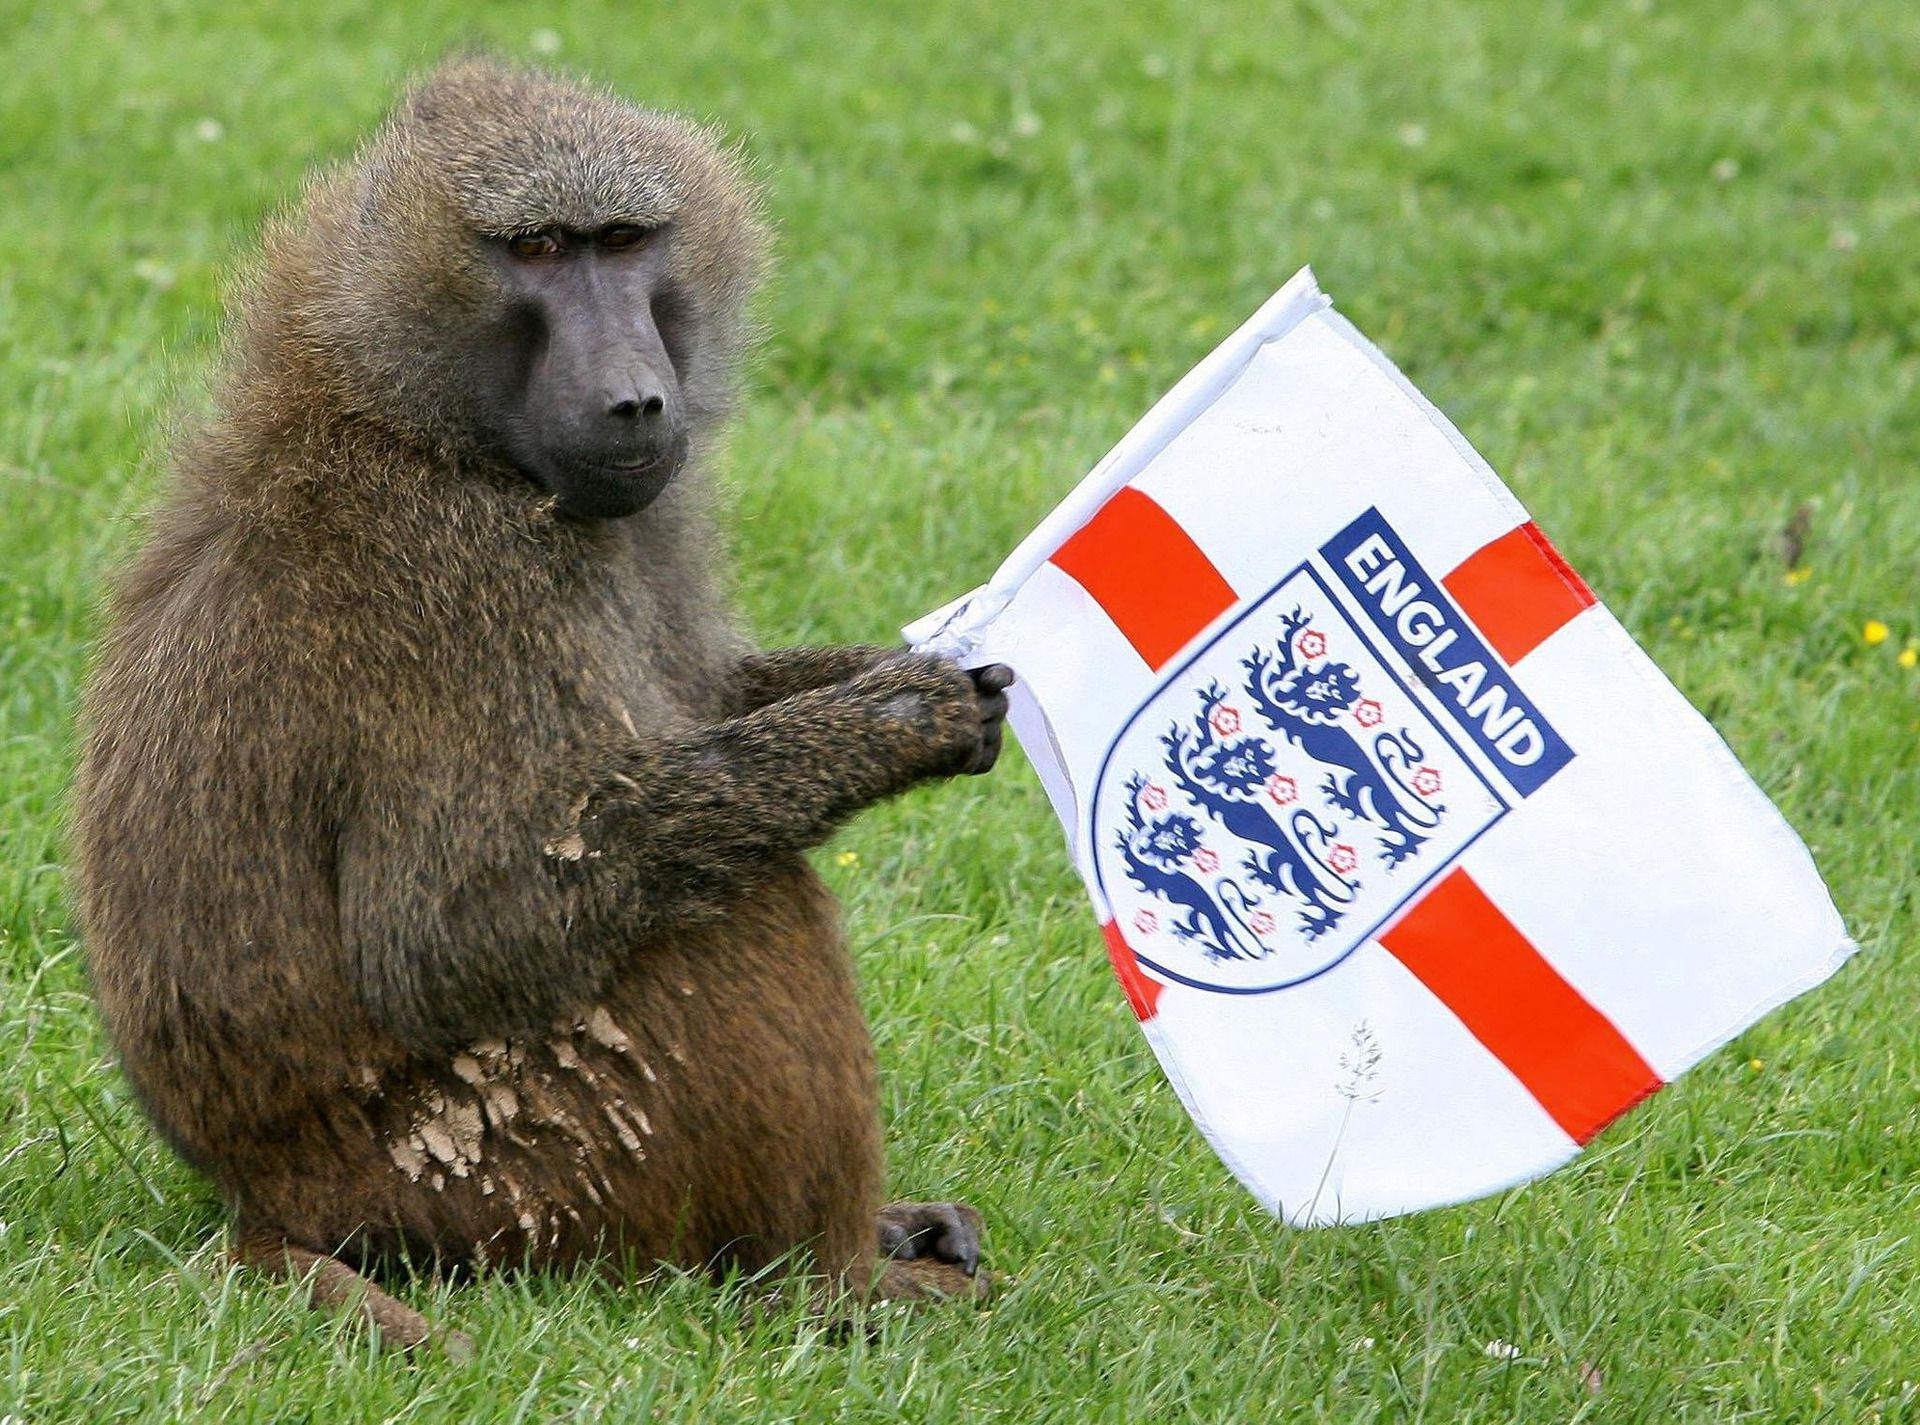 Windows Up Baboons At Uk Safari Park Arm Themselves With Knives Chainsaw Nz Herald